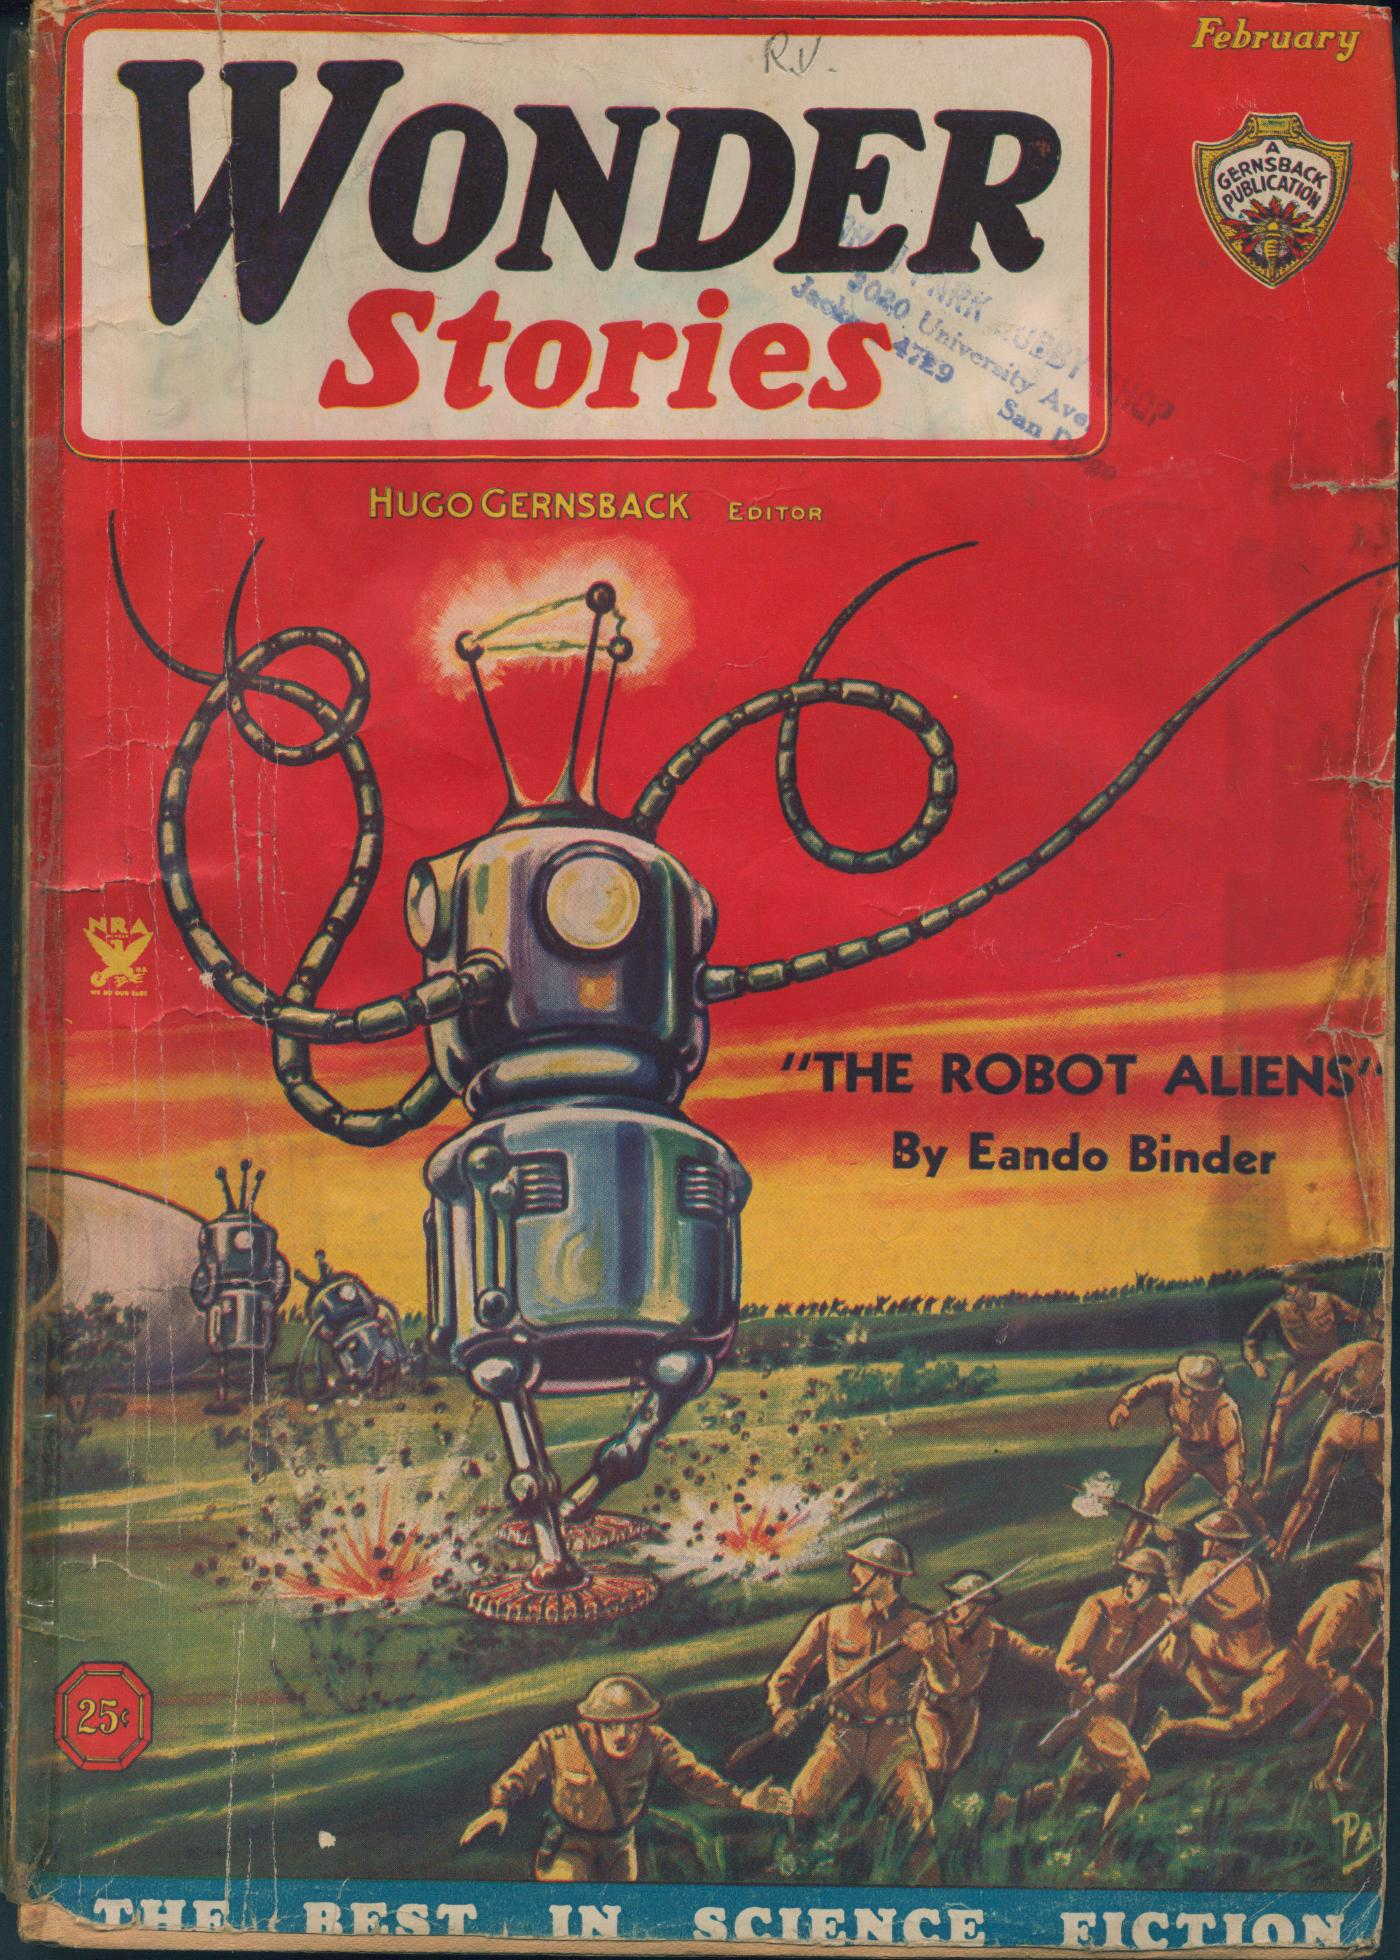 Cover of Wonder Stories, vol 6 no 9, shows soldiers in World War I era uniforms fleeing giant robots.